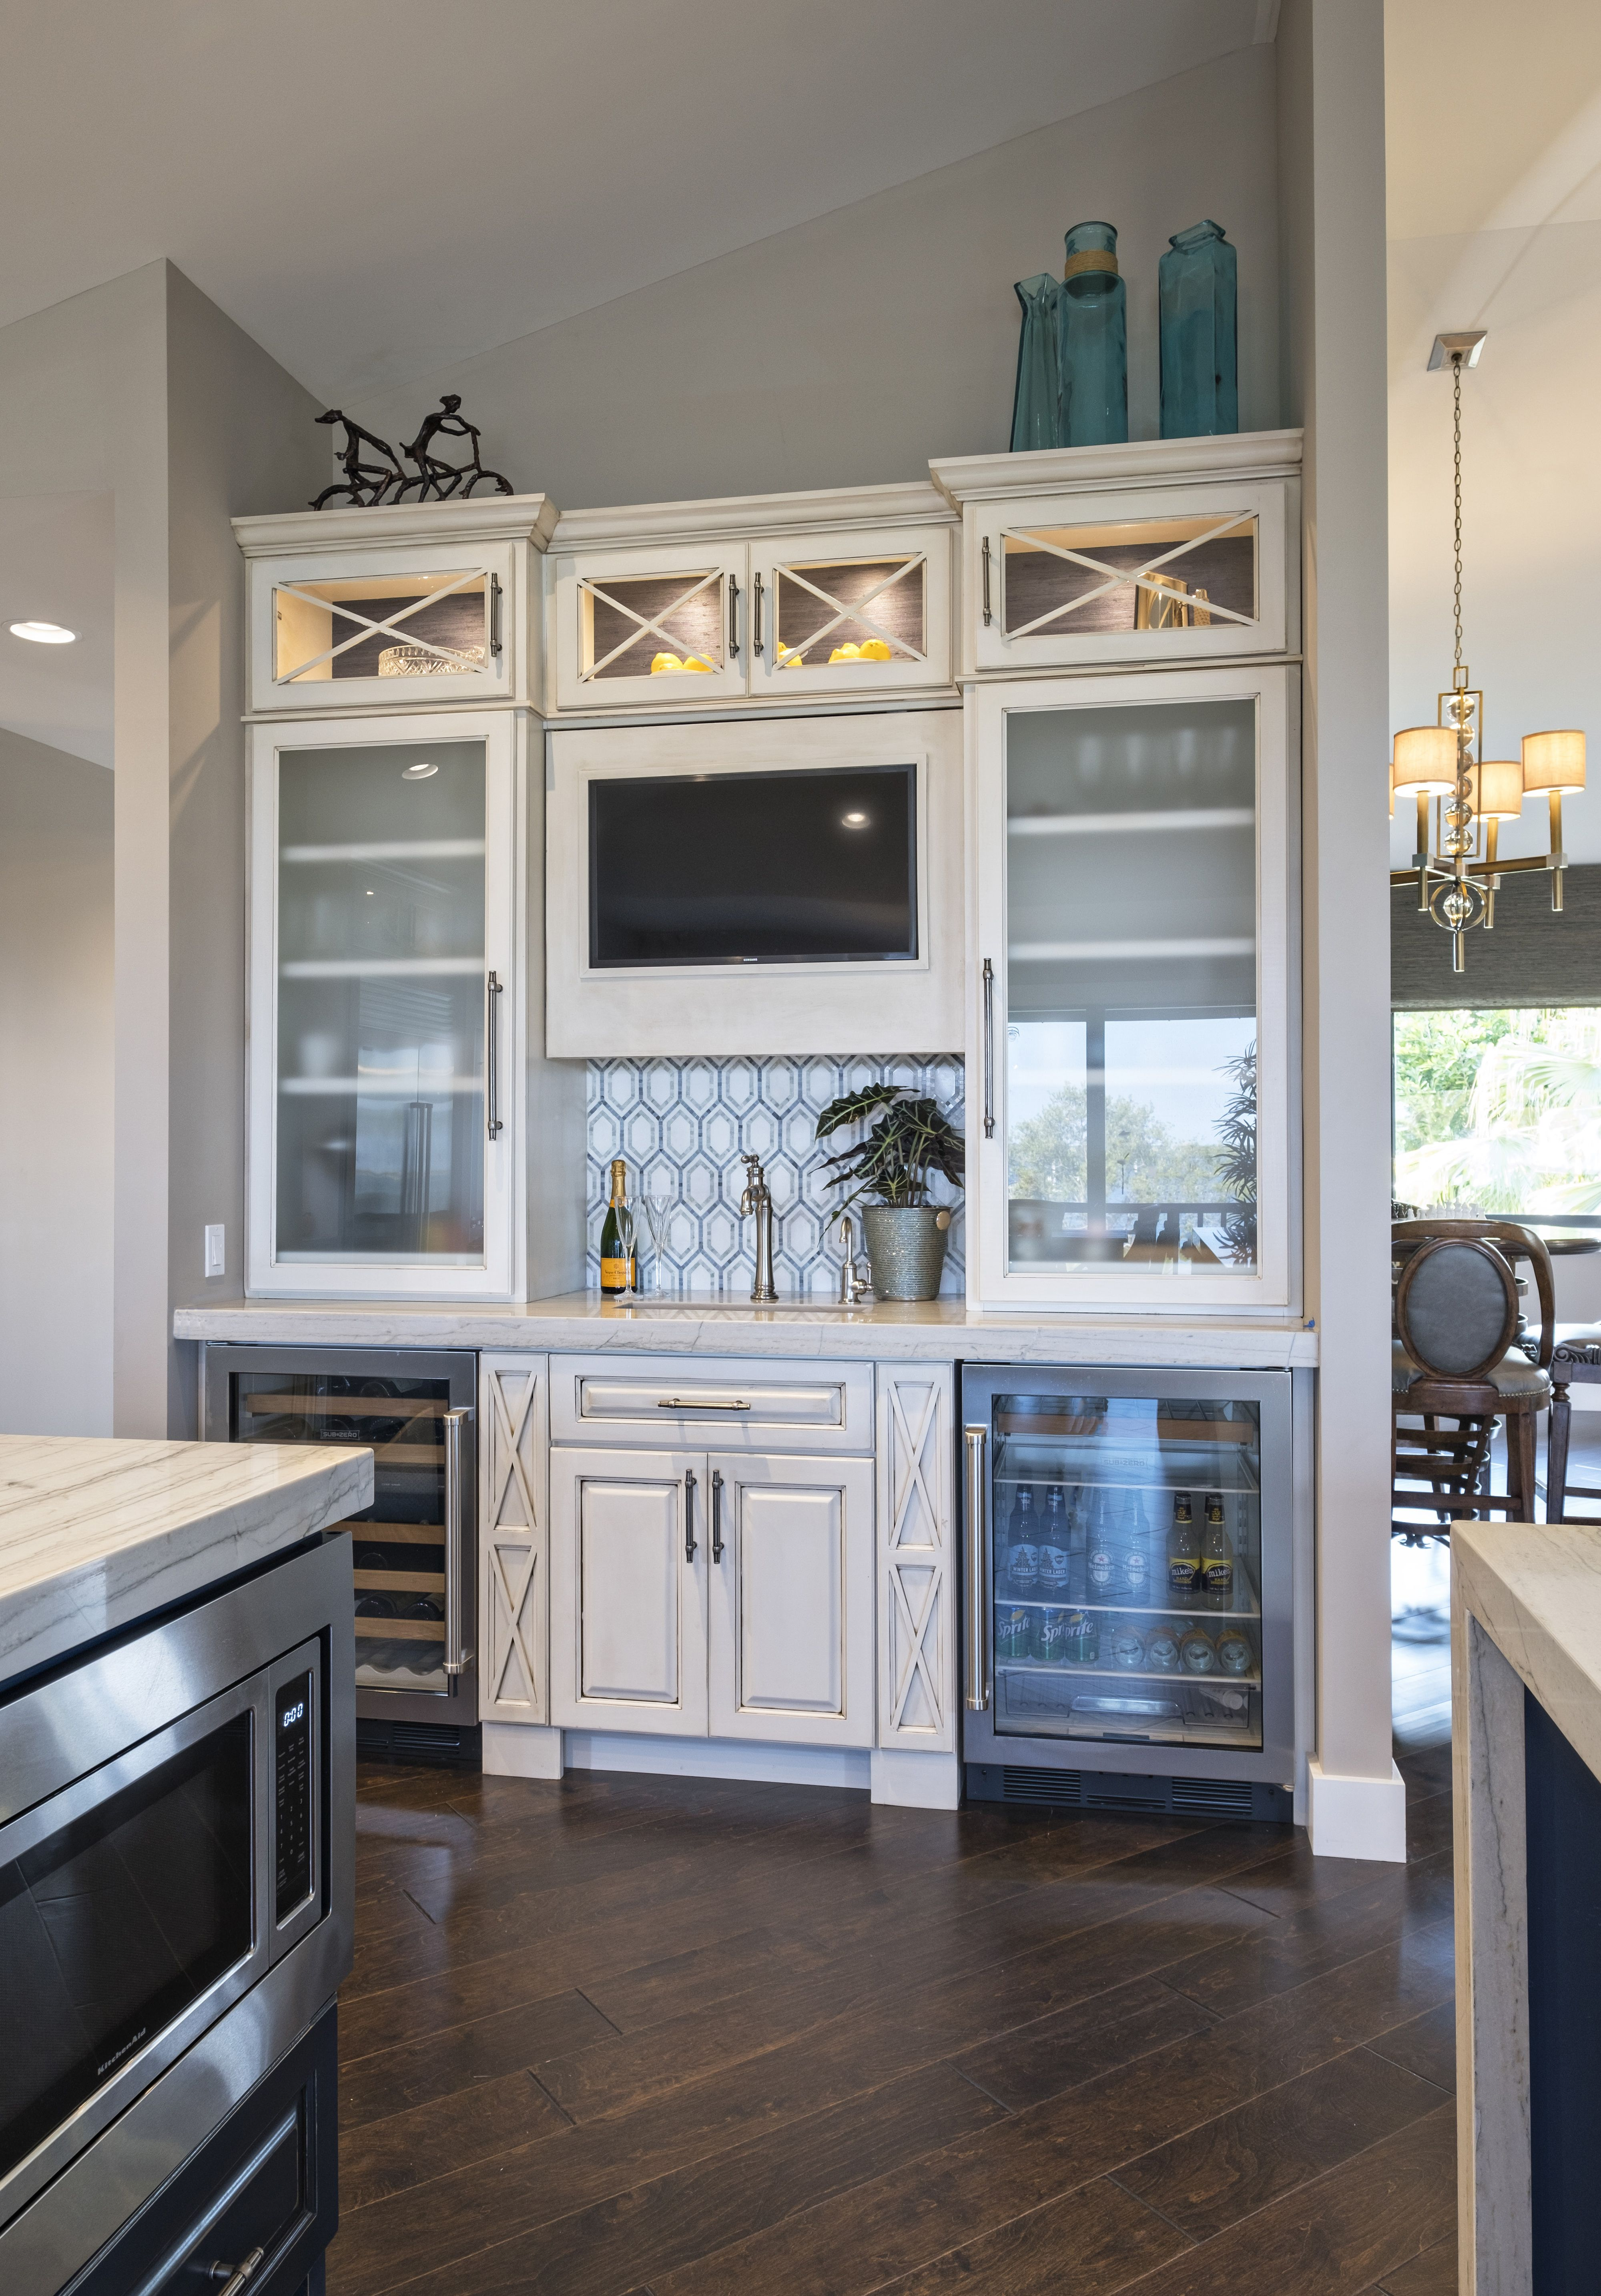 Pin By Francesca Morgan Interiors On Culinary Worthy Kitchens Kitchen Design Kitchen Remodel Layout Kitchen Styling